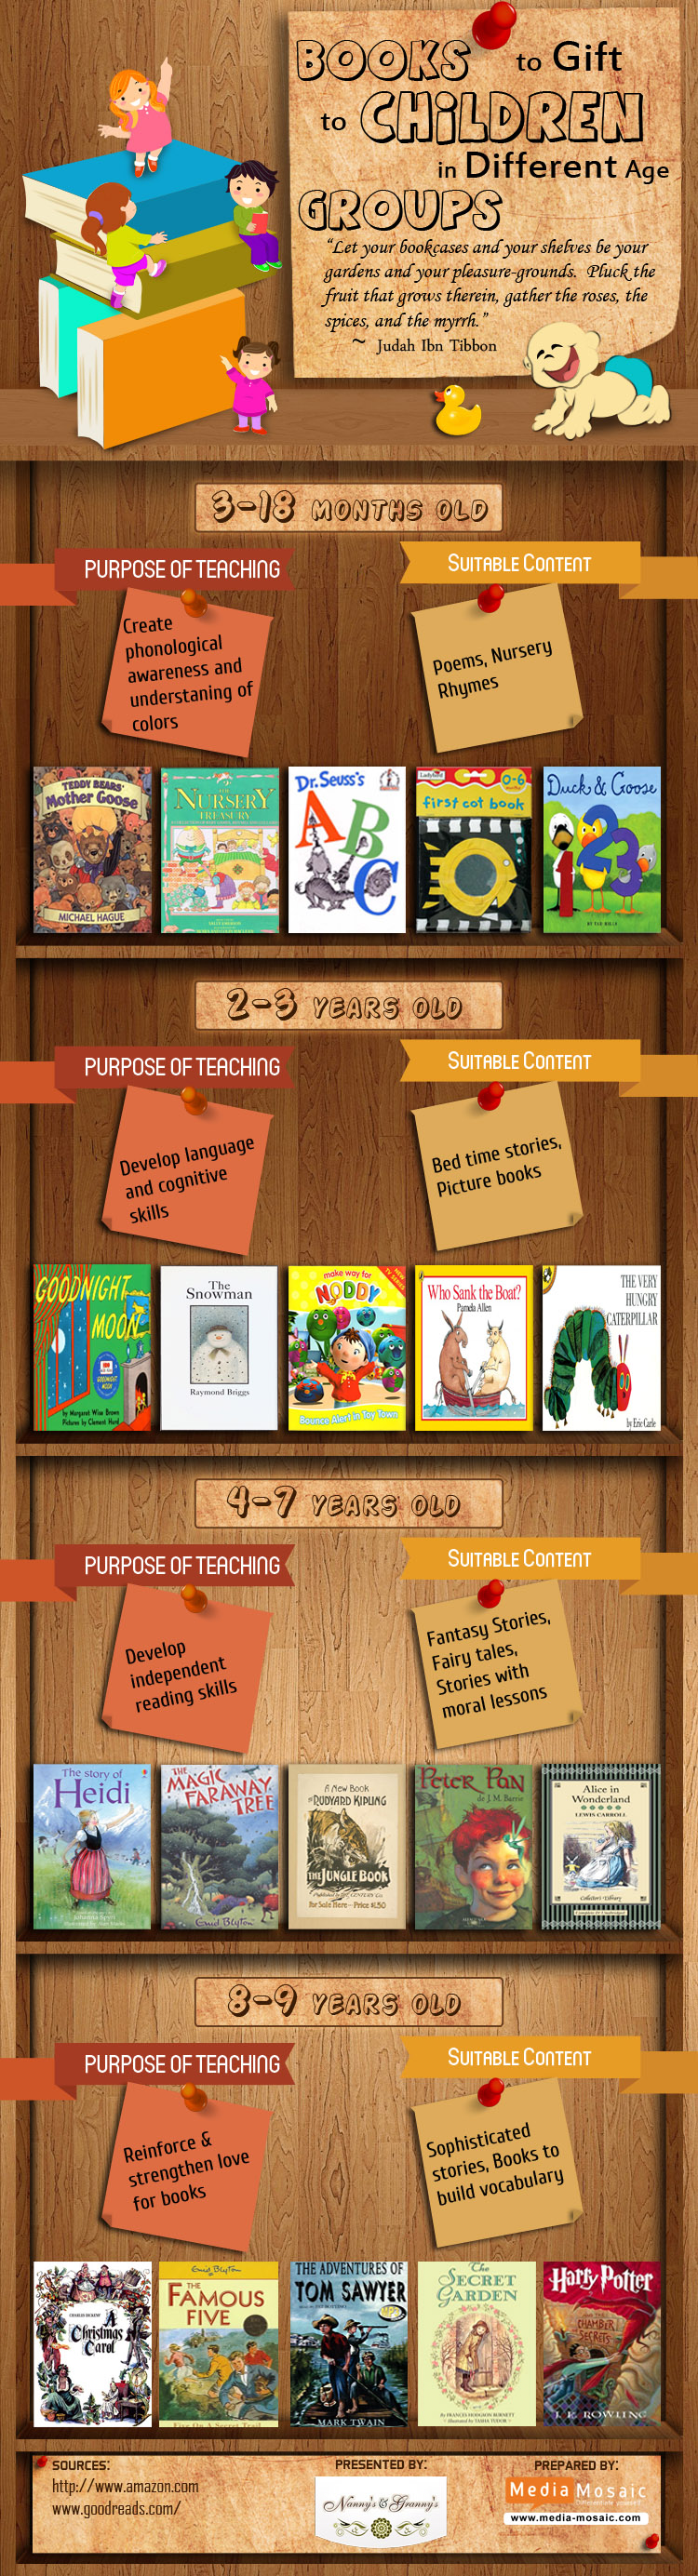 Post image for Books to Gift to Children in Different Age Groups (Infographic)